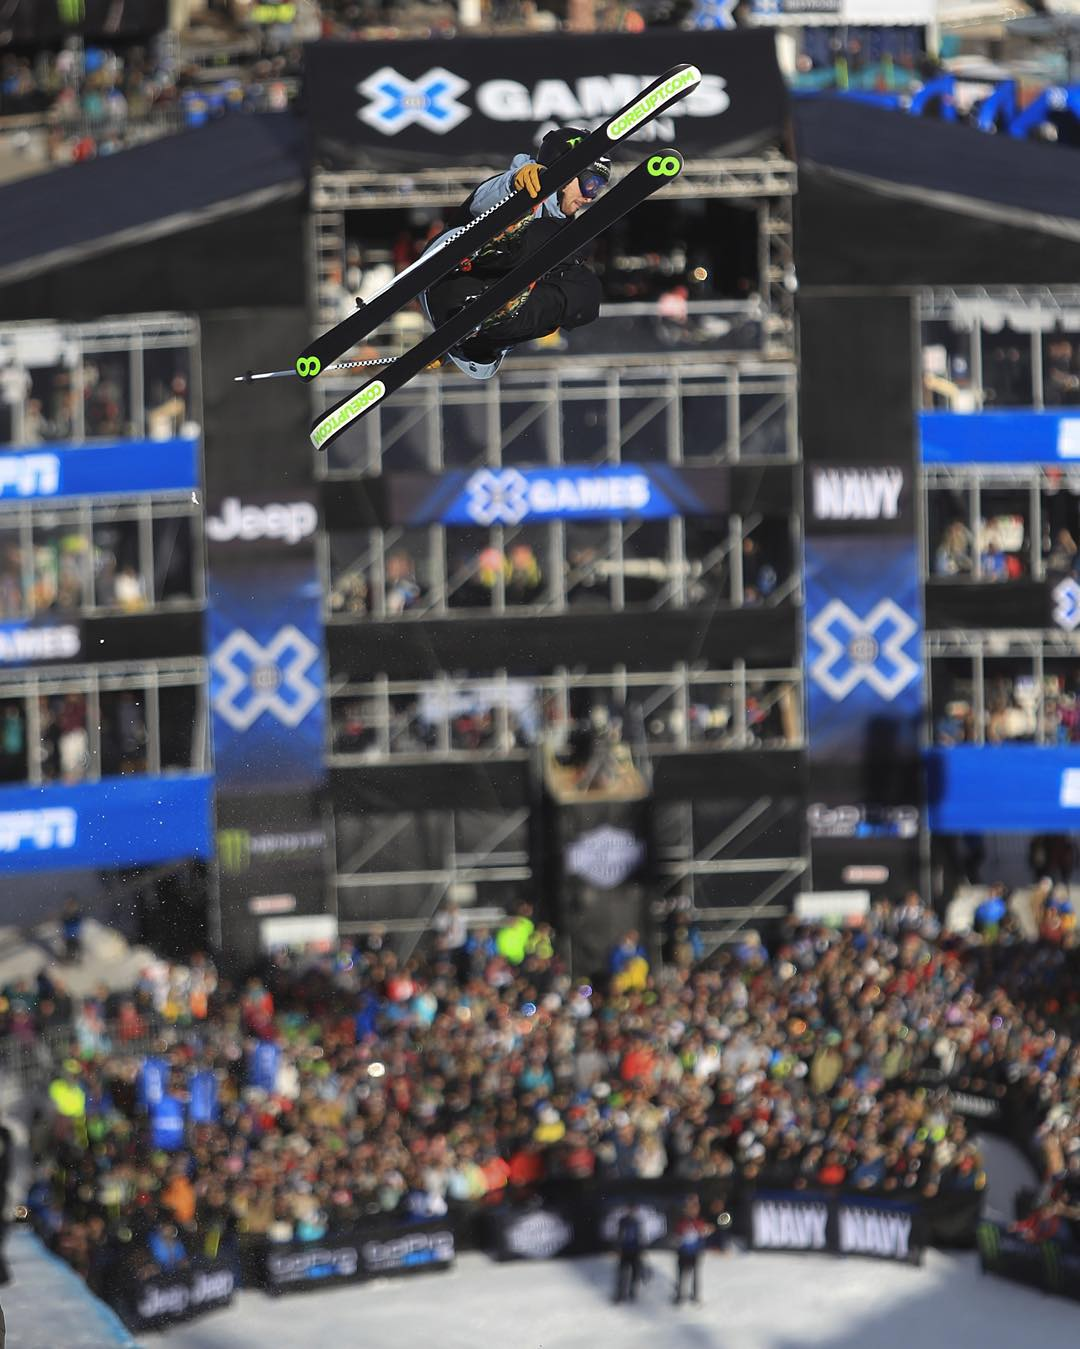 If you want to experience #XGames Aspen in style, our exclusive platinum pass is for you!  Jump over to XGames.com/Tickets to snag the best seats in the house.